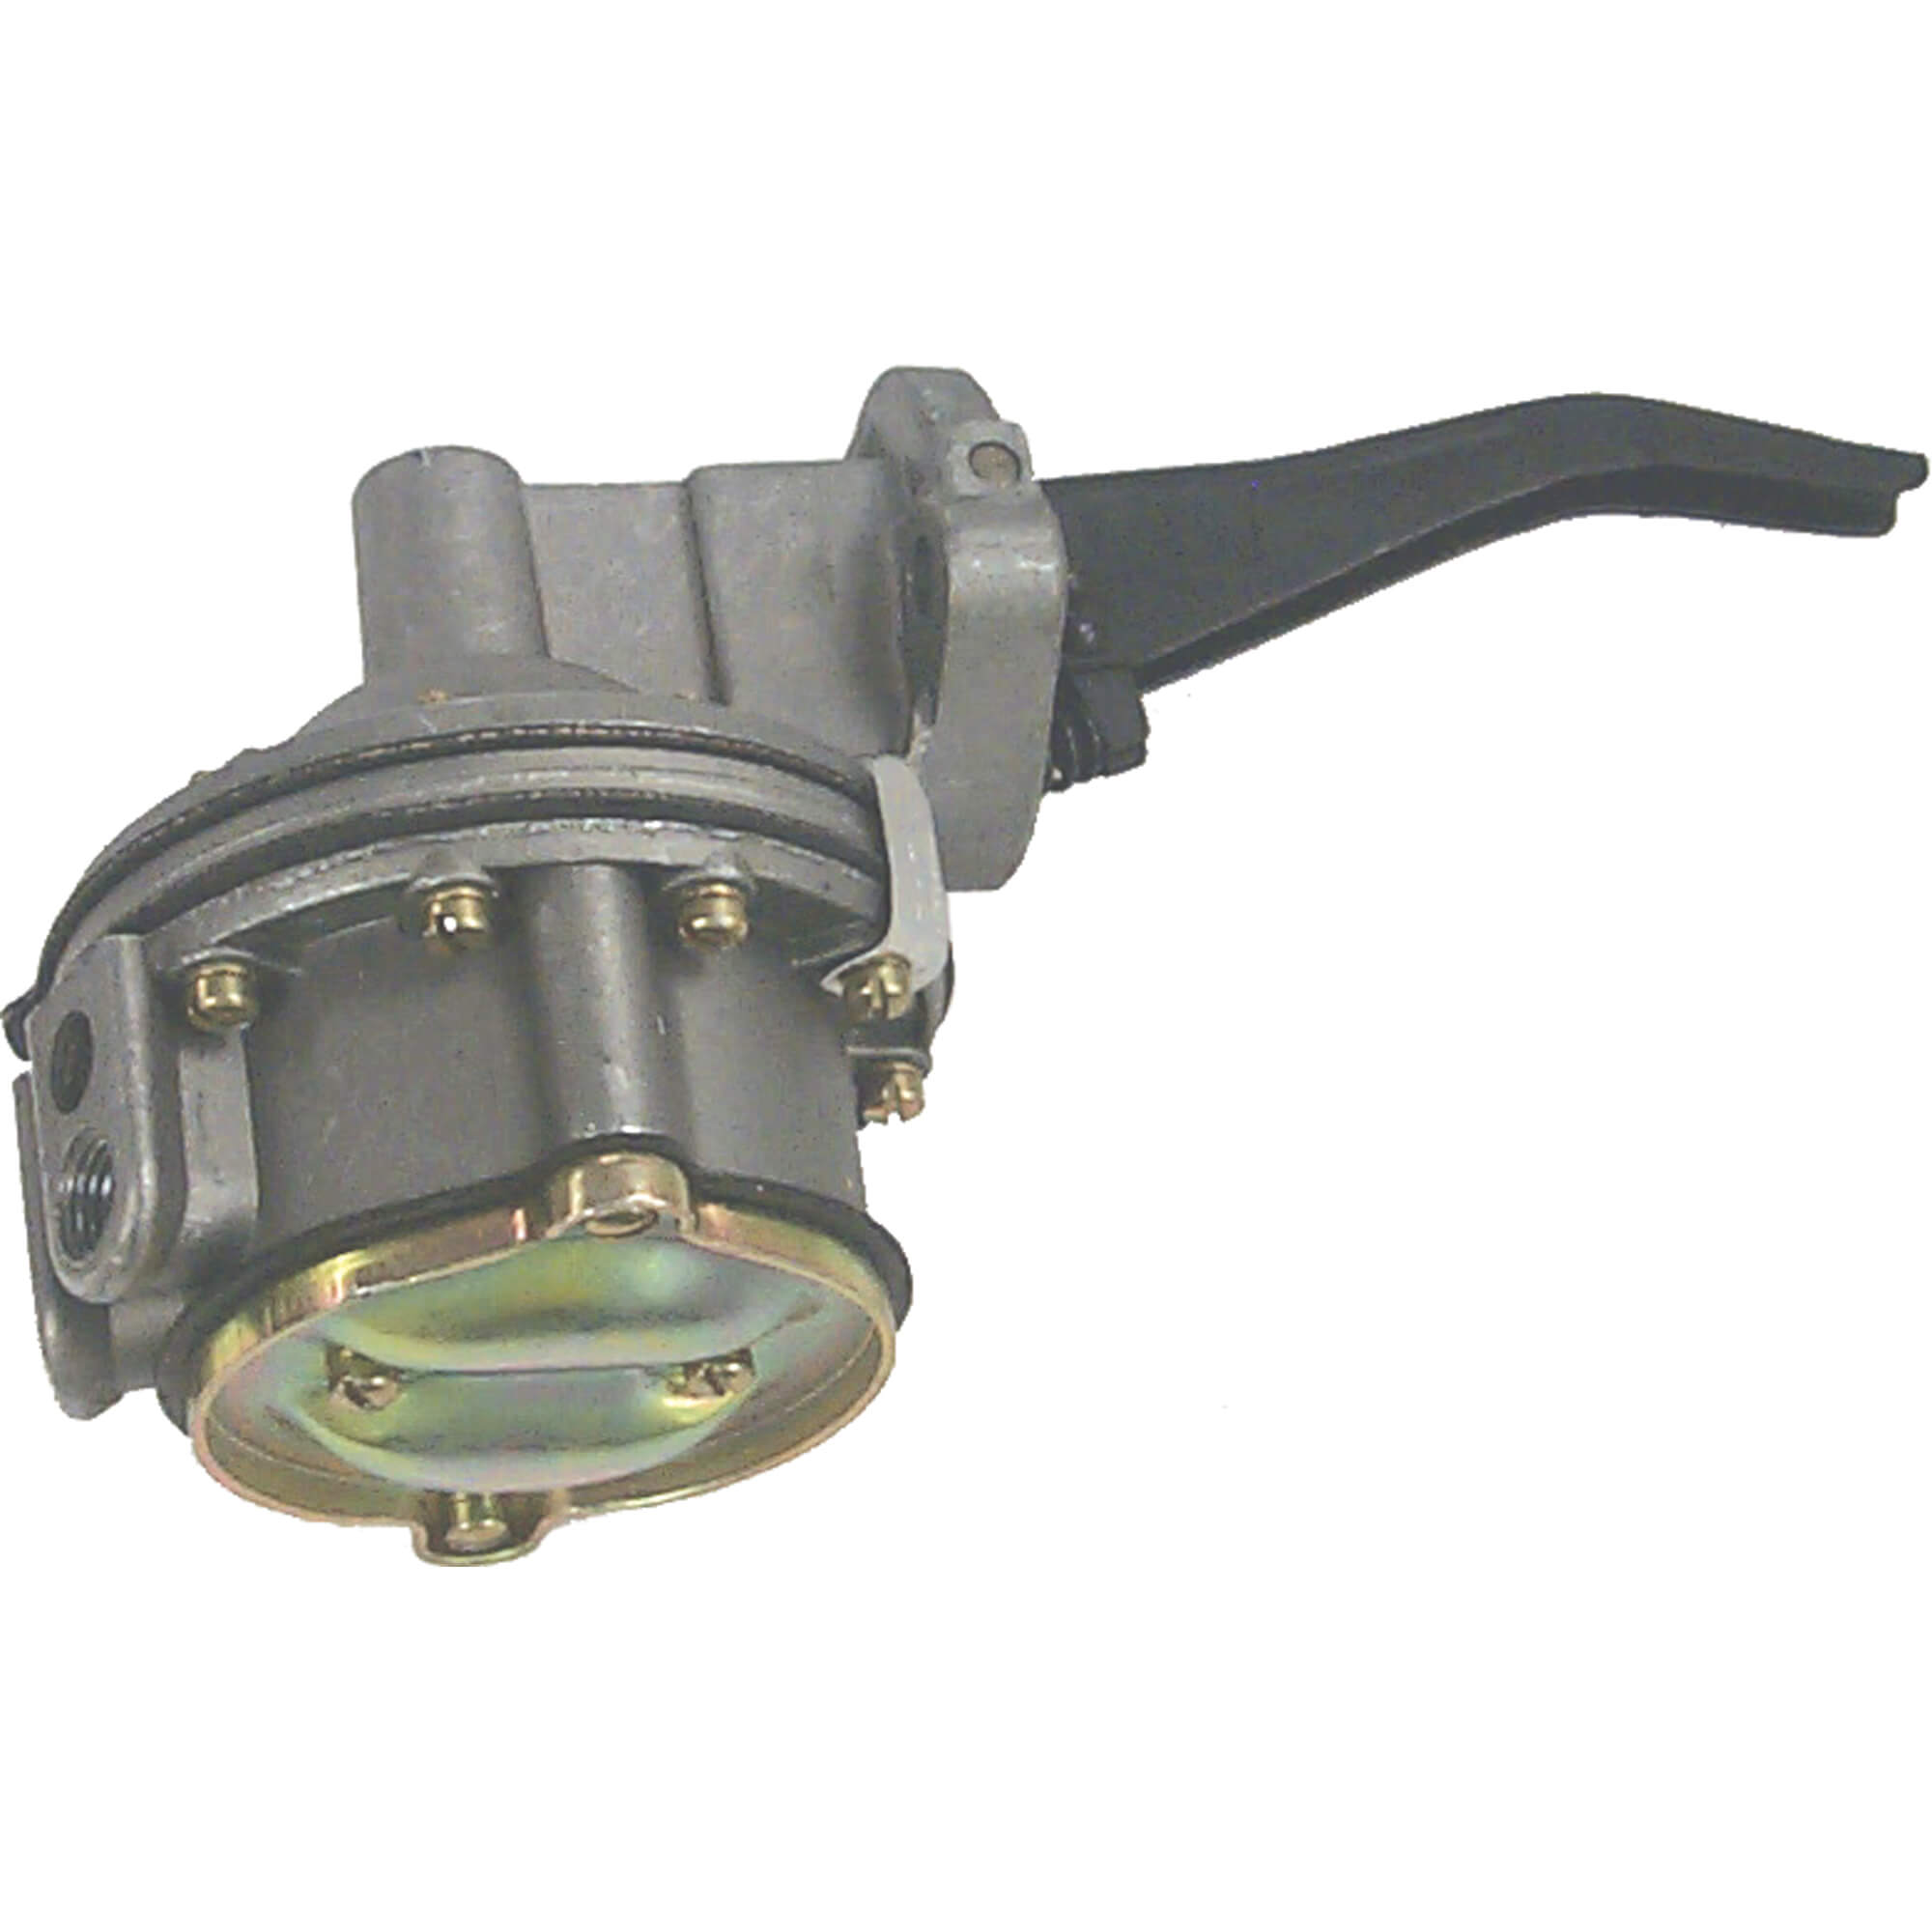 Ford 302 Fuel Pump Marine Inboard Pumps Engine Acdelco 12 Volt Solenoid Wiring Diagram Parts Products By Category